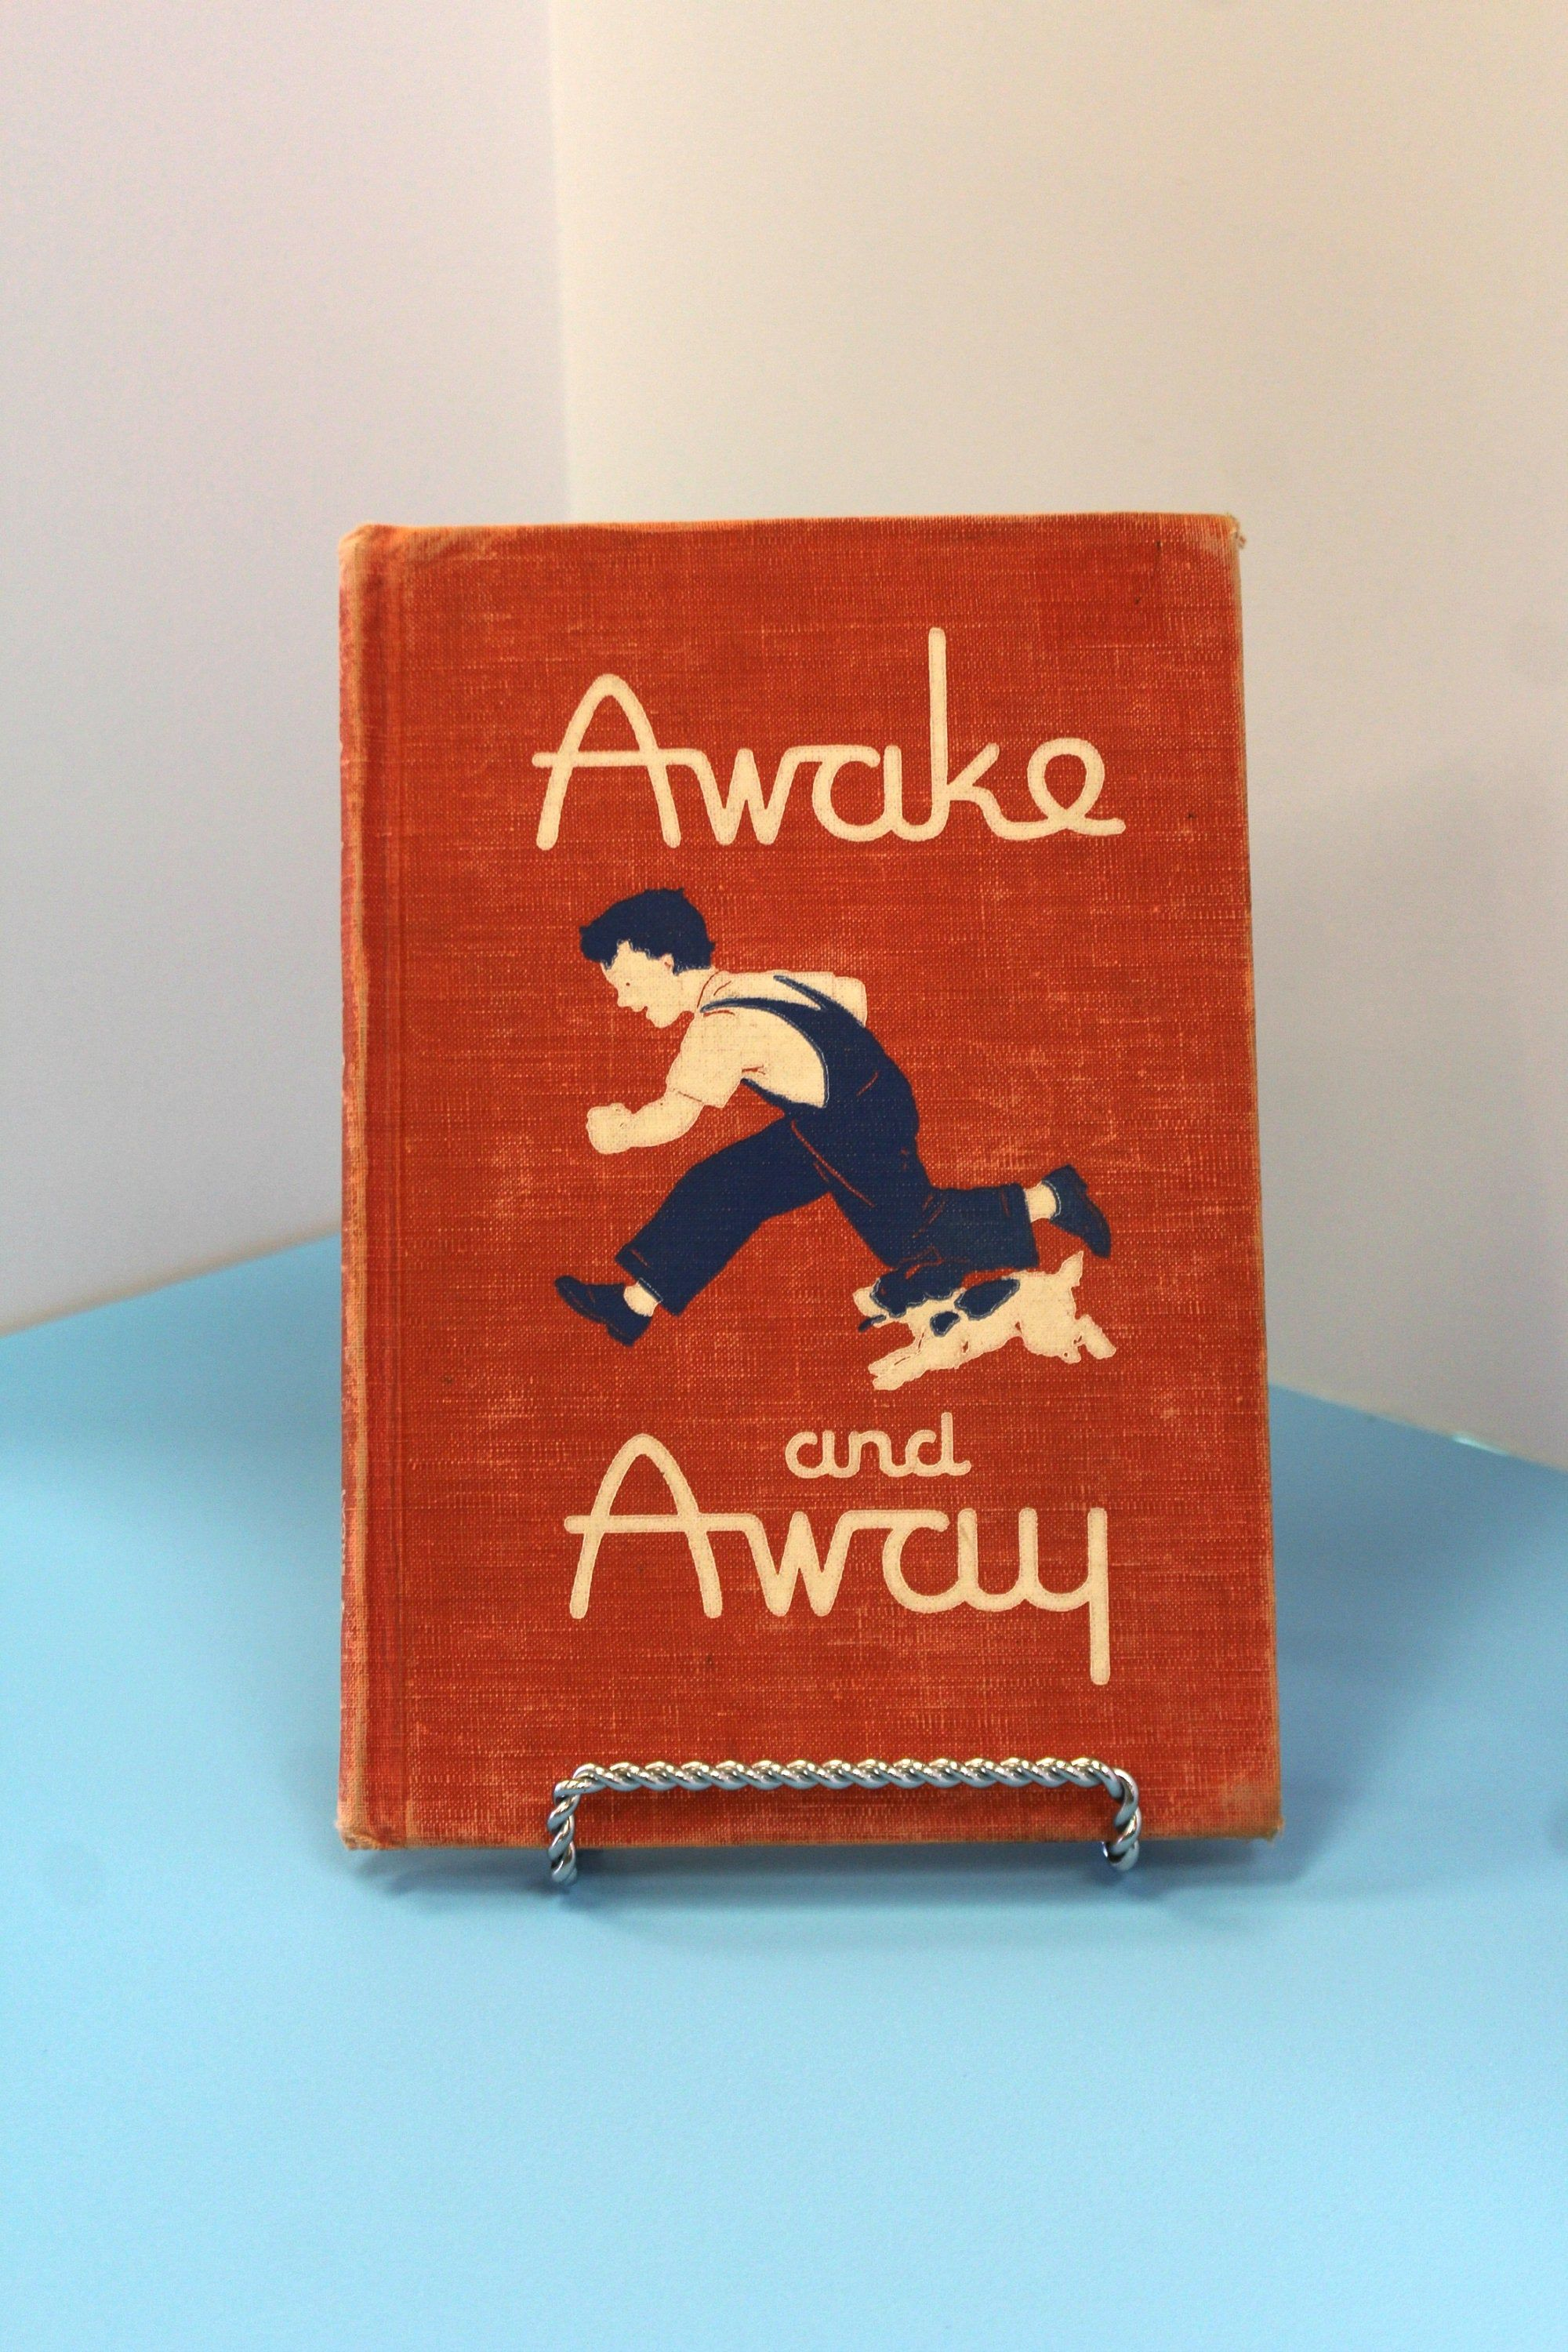 Vintage School Book Awake And Away Primary School Etsy Vintage School Health And Safety Books